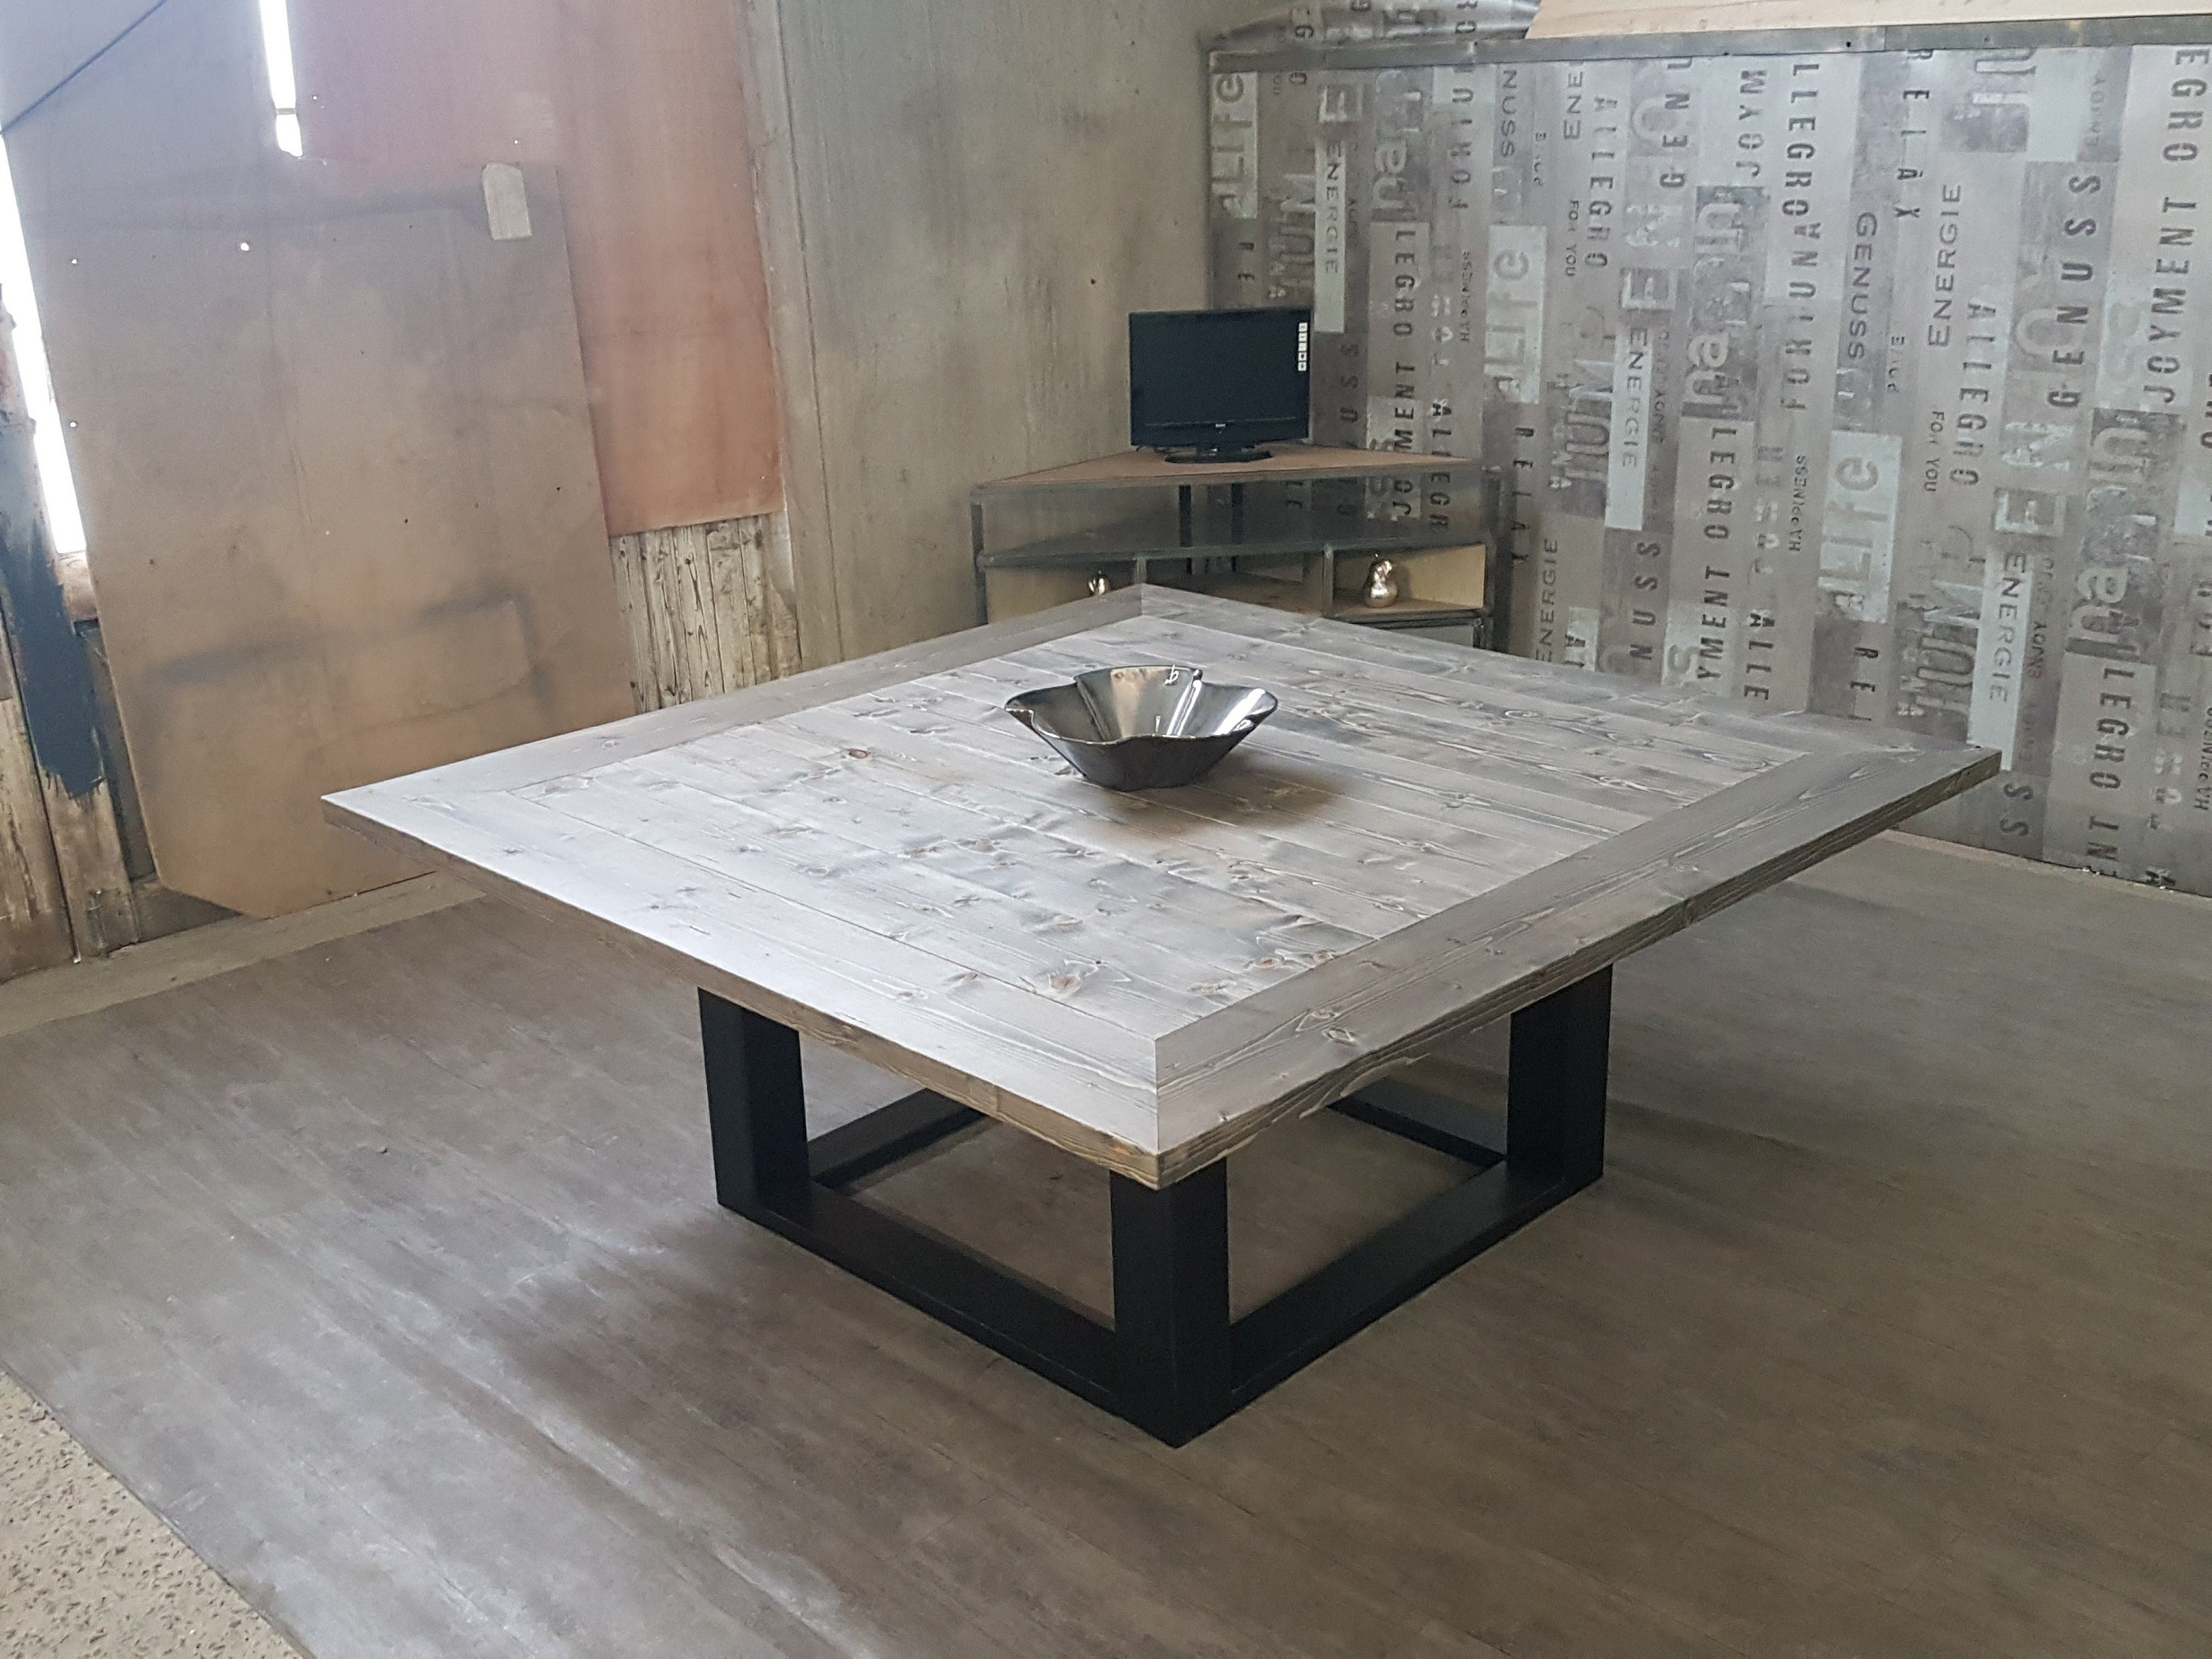 Emejing table salle a manger style atelier ideas for Table salle a manger carree avec rallonge